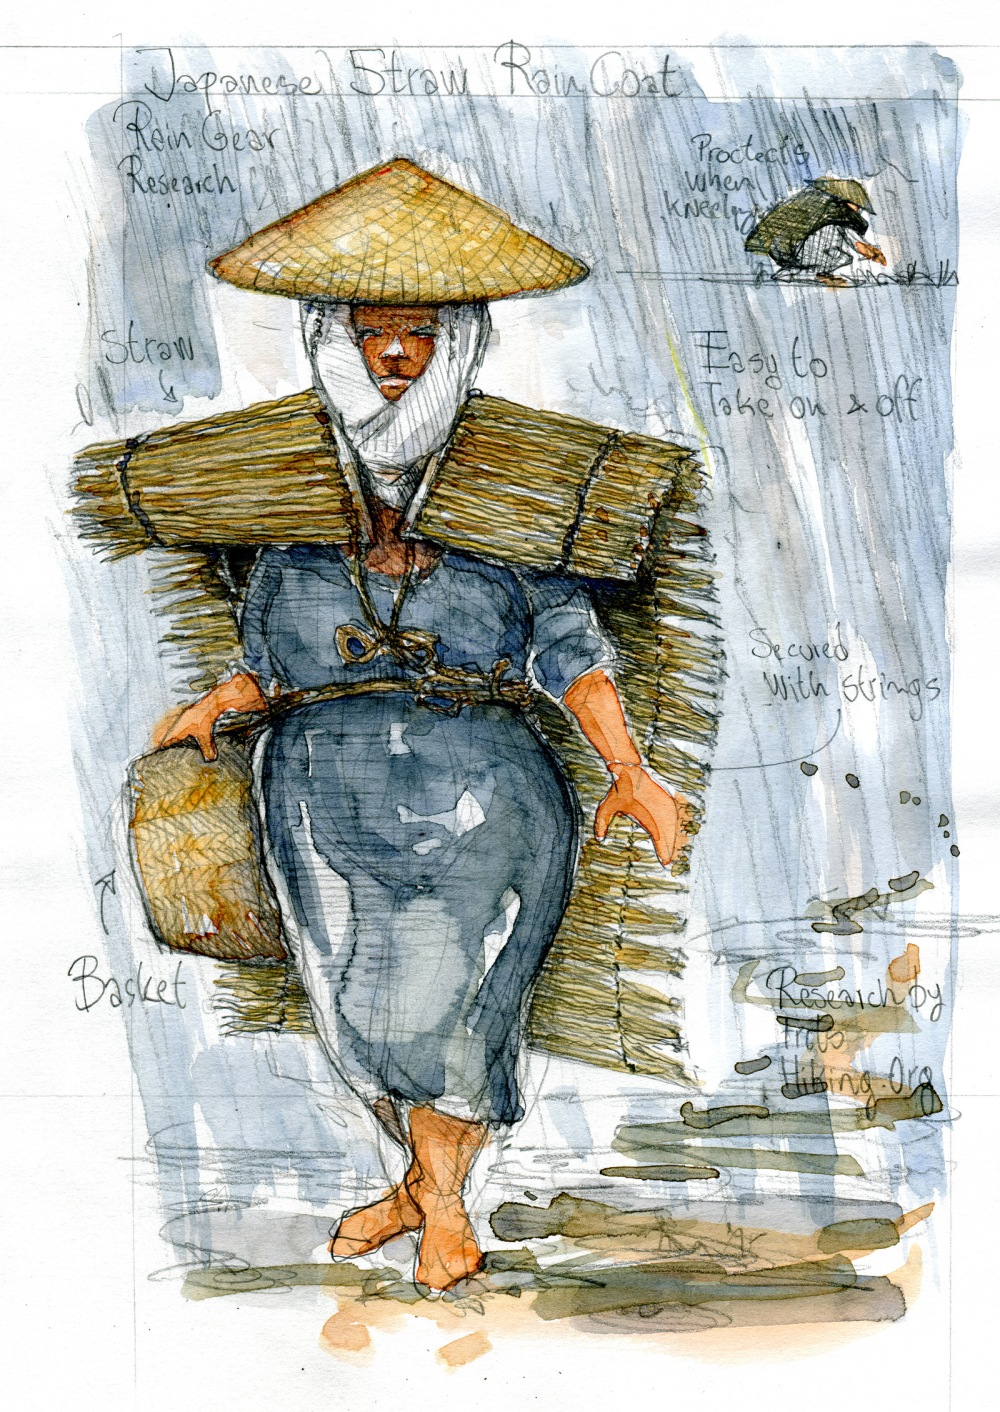 Drawing of traditional Japanese Rain cover, creative-commons license